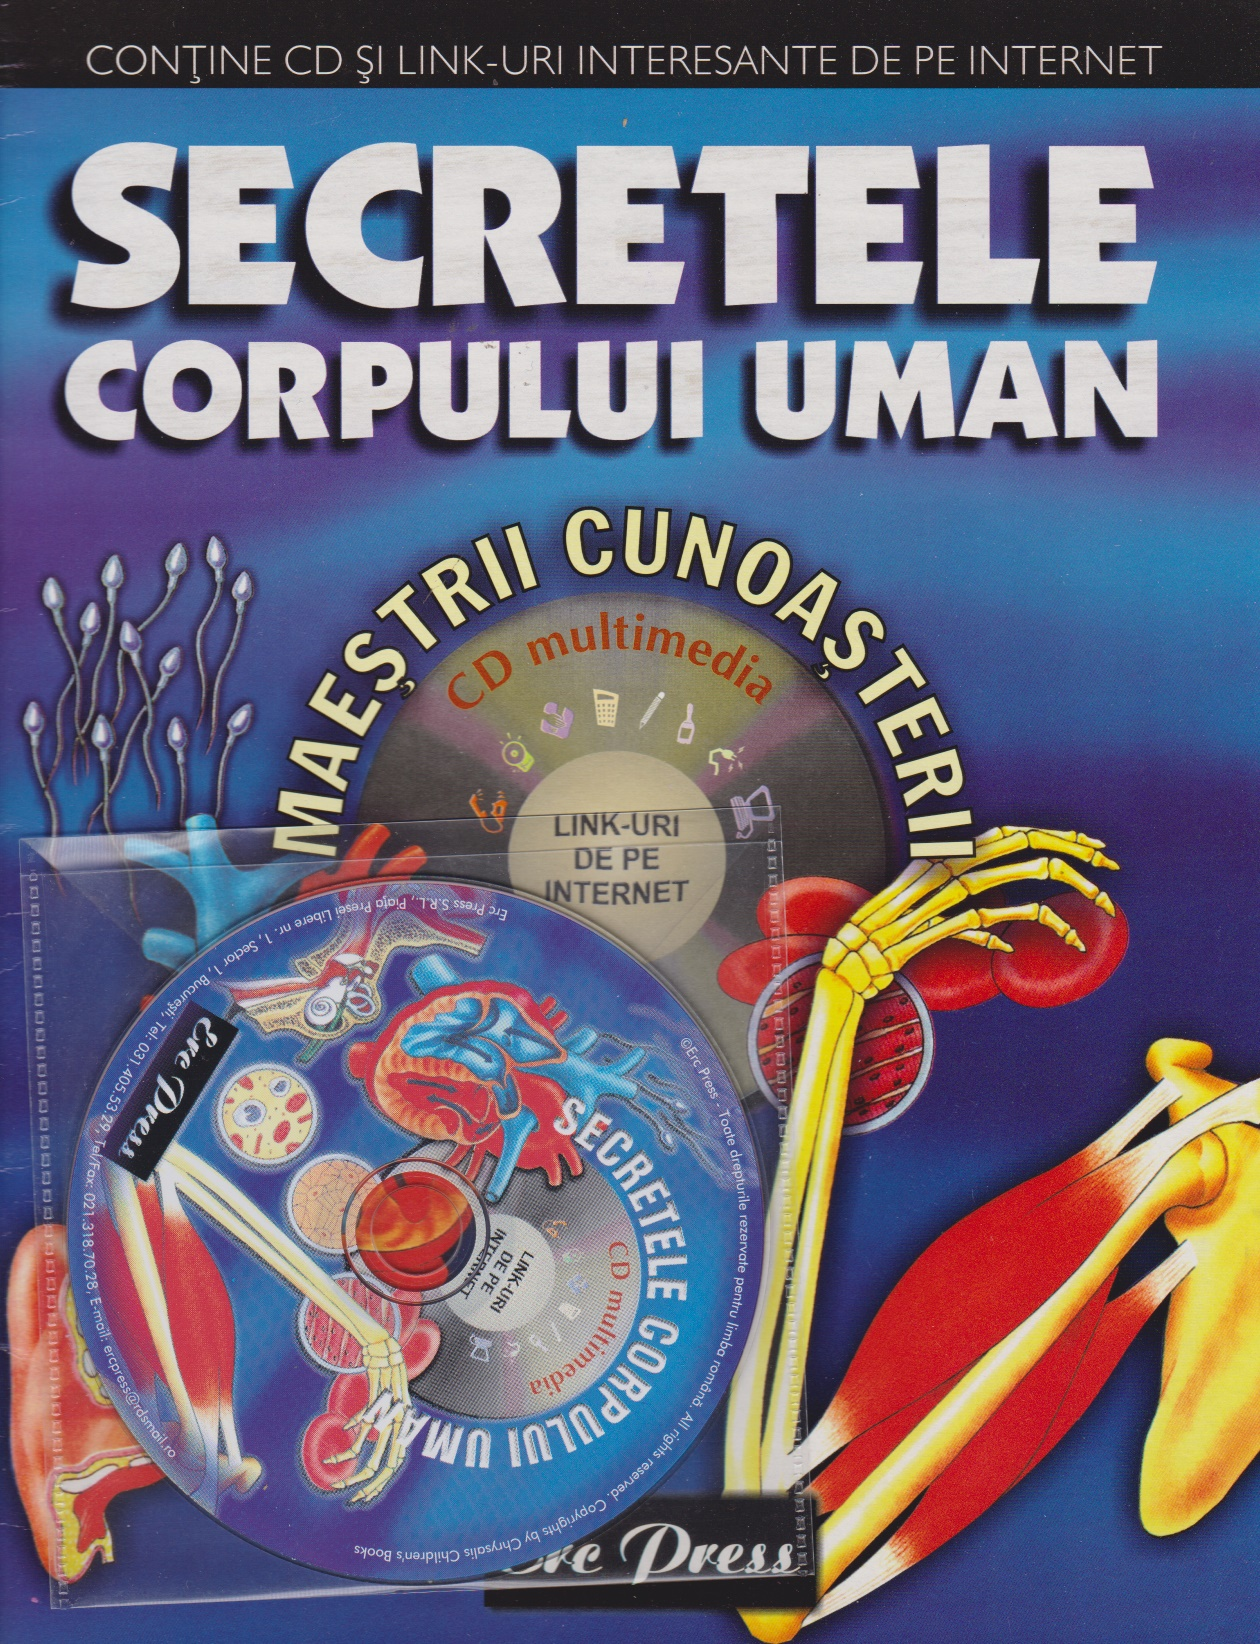 Maestrii cunoasterii Secretele corpului uman